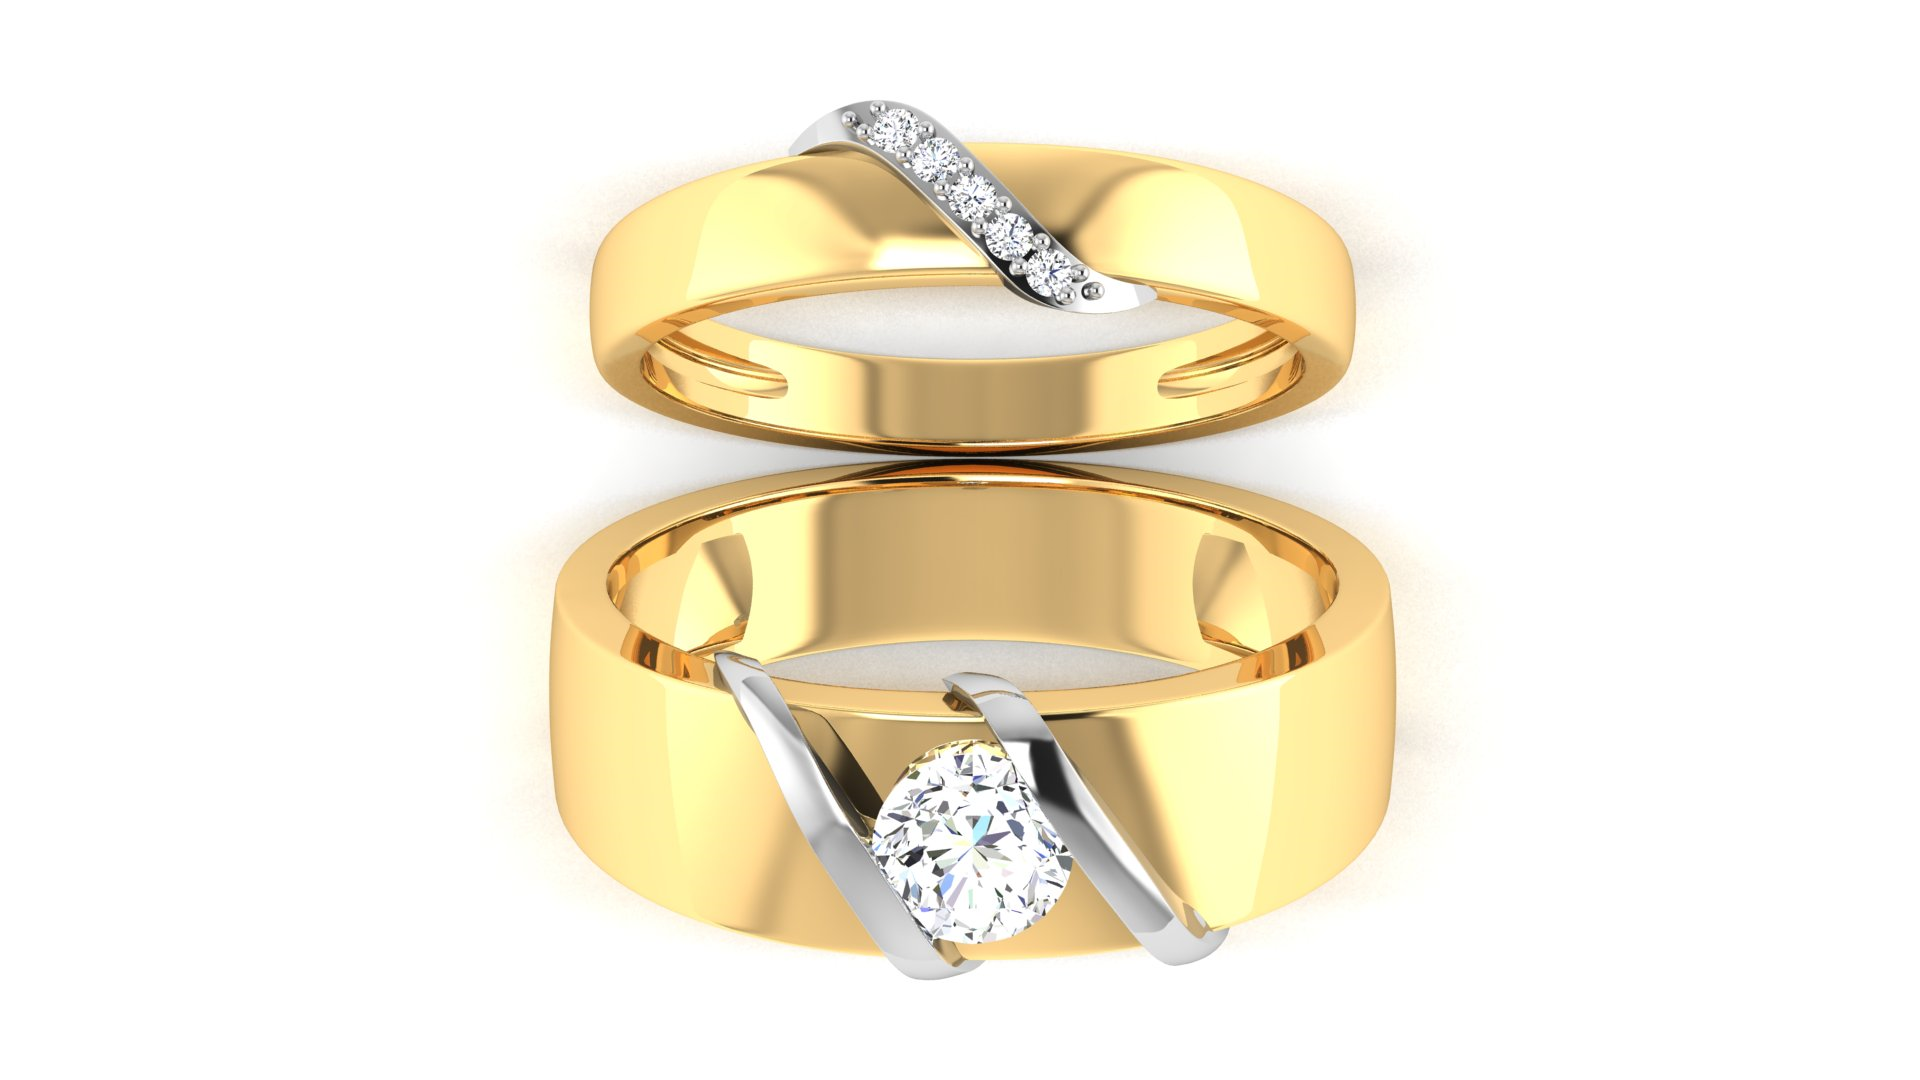 Diamond Ring for Engagement Ceremony